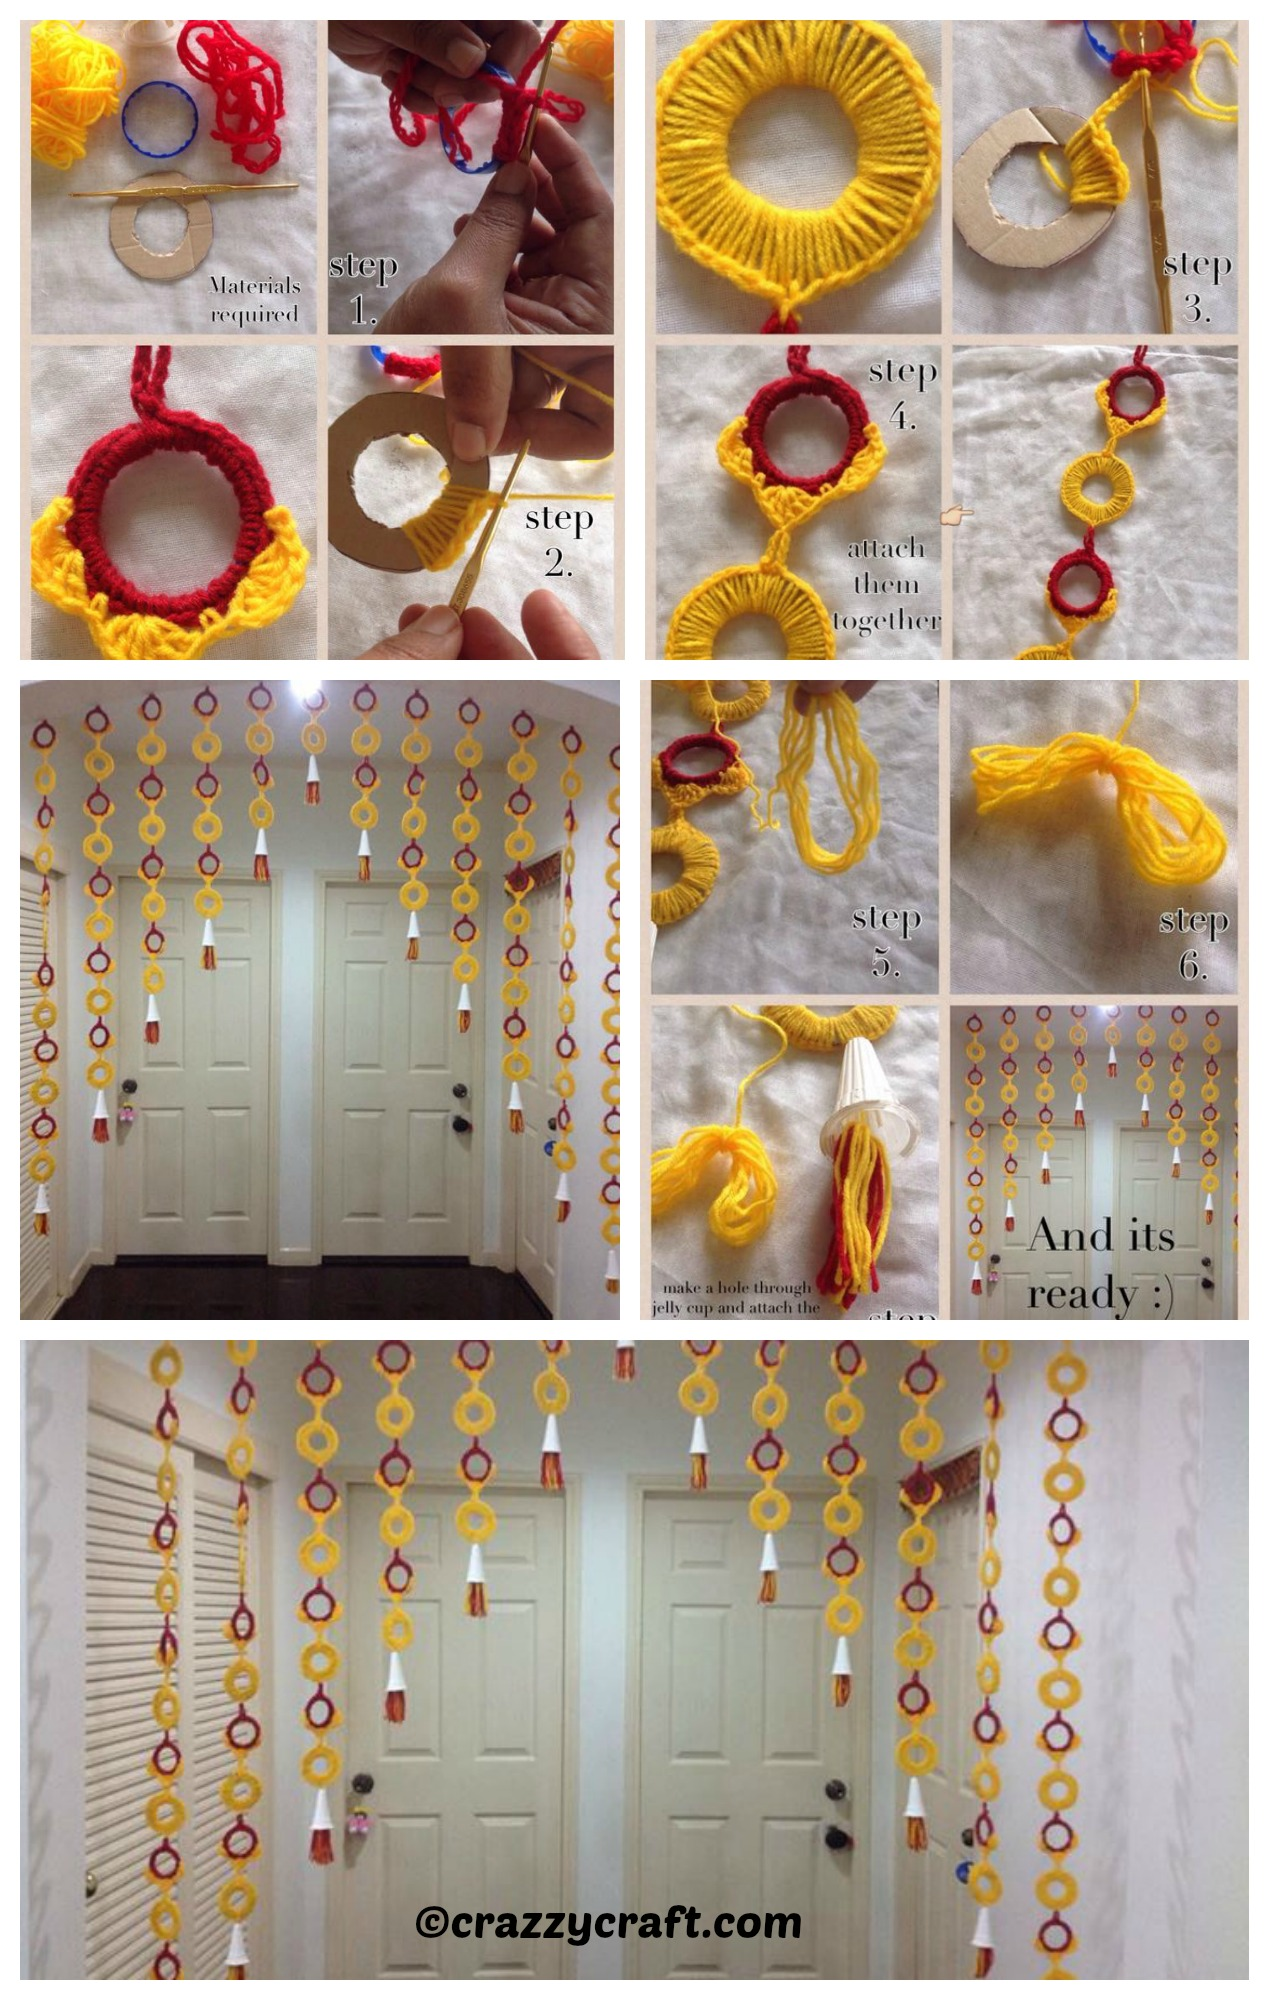 How to make a Bottle Rings Curtain